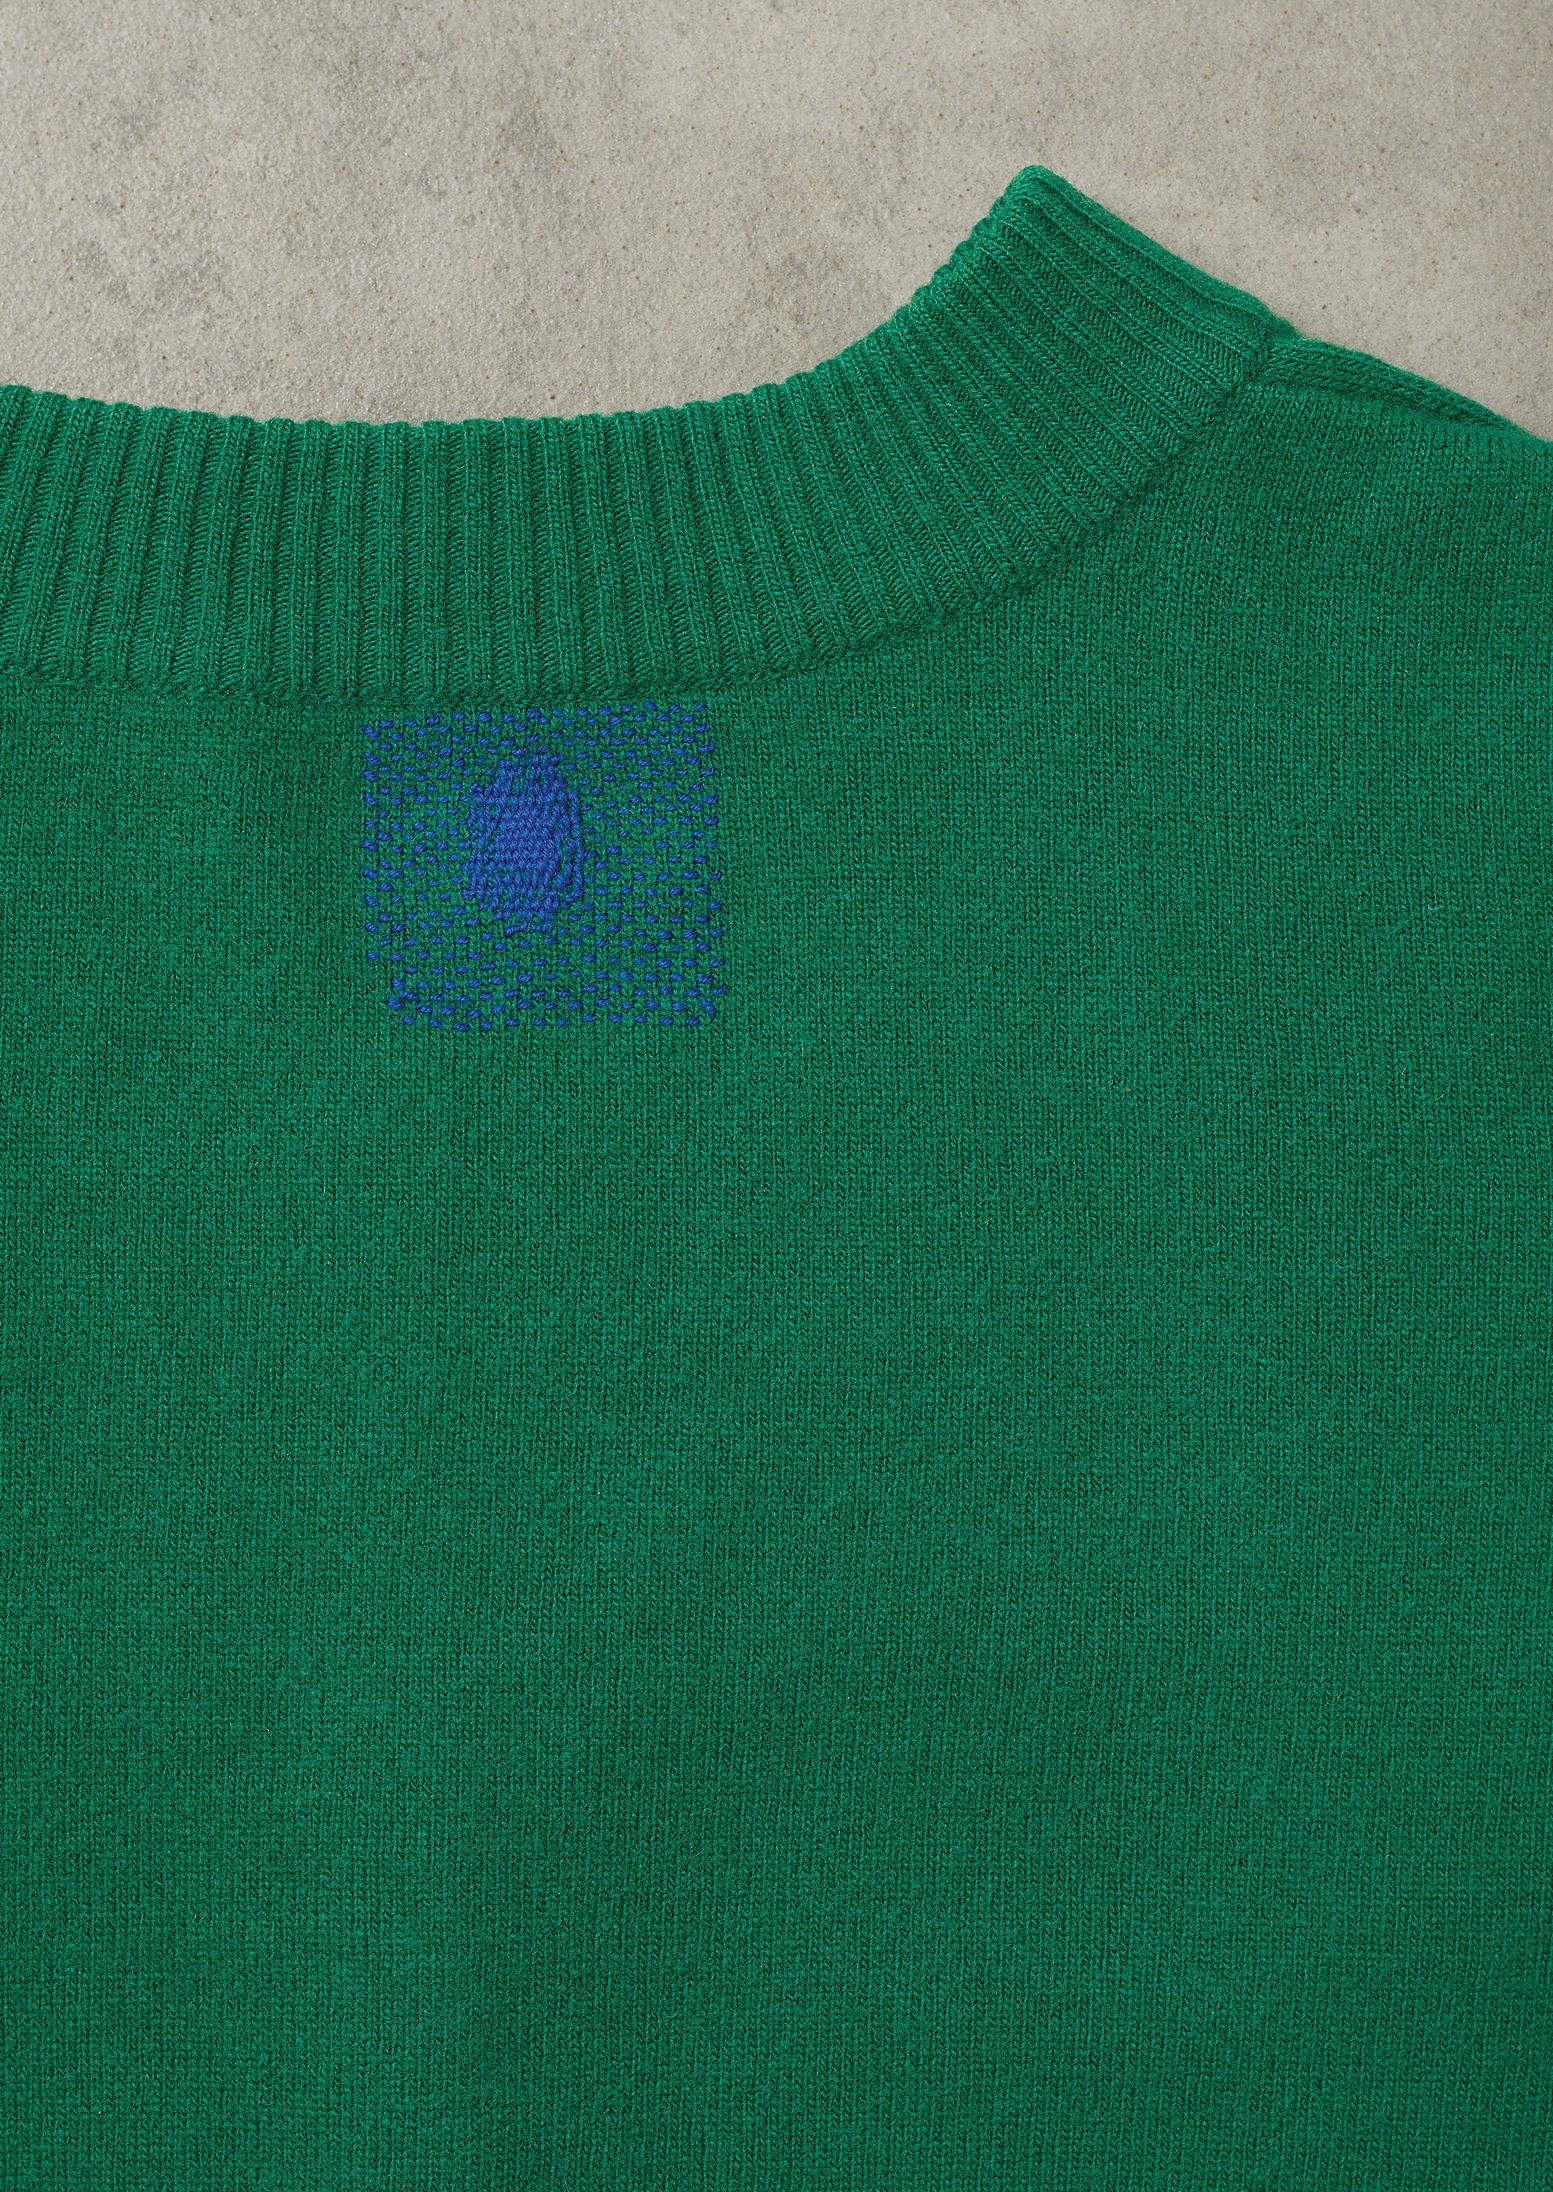 Green sweater from TOAST with mended hole.